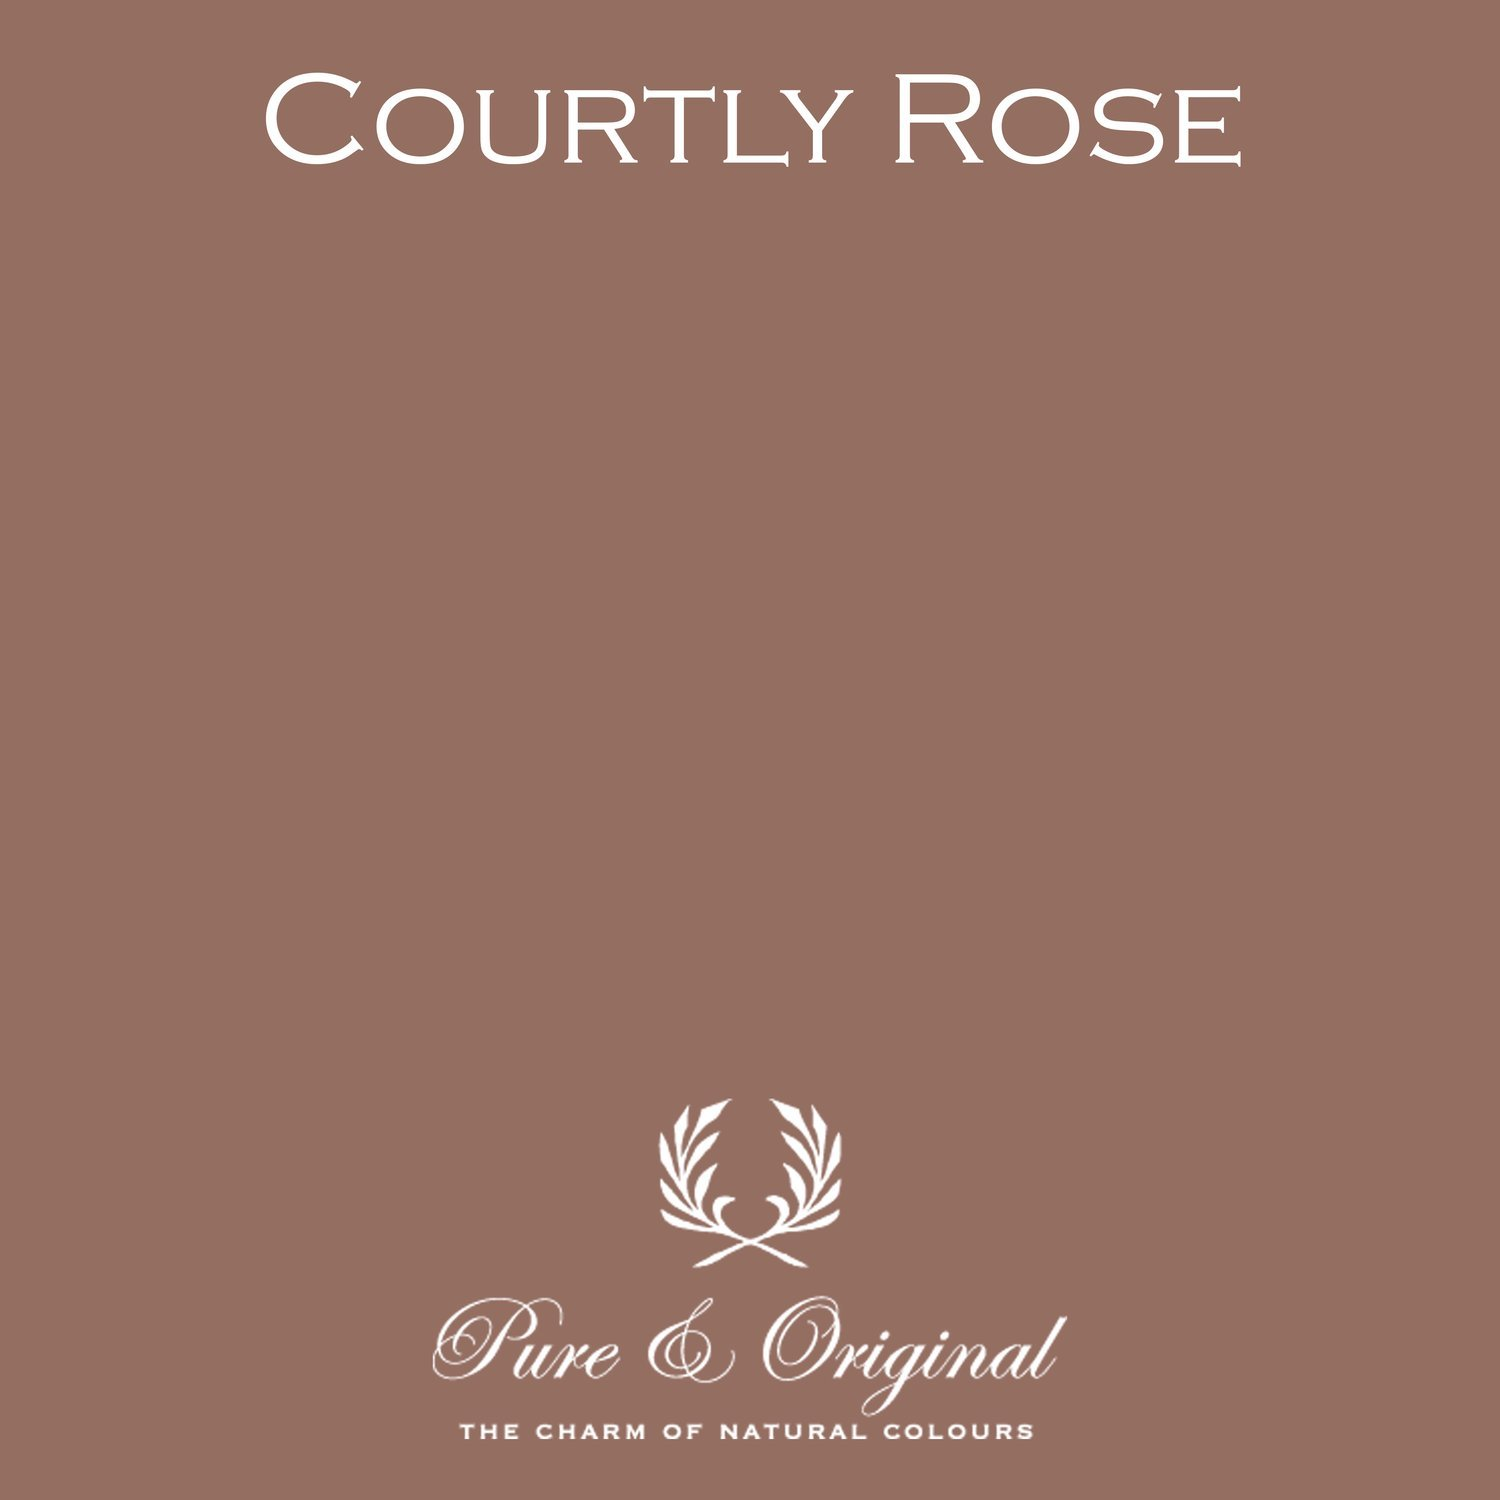 Courtly Rose Marrakech